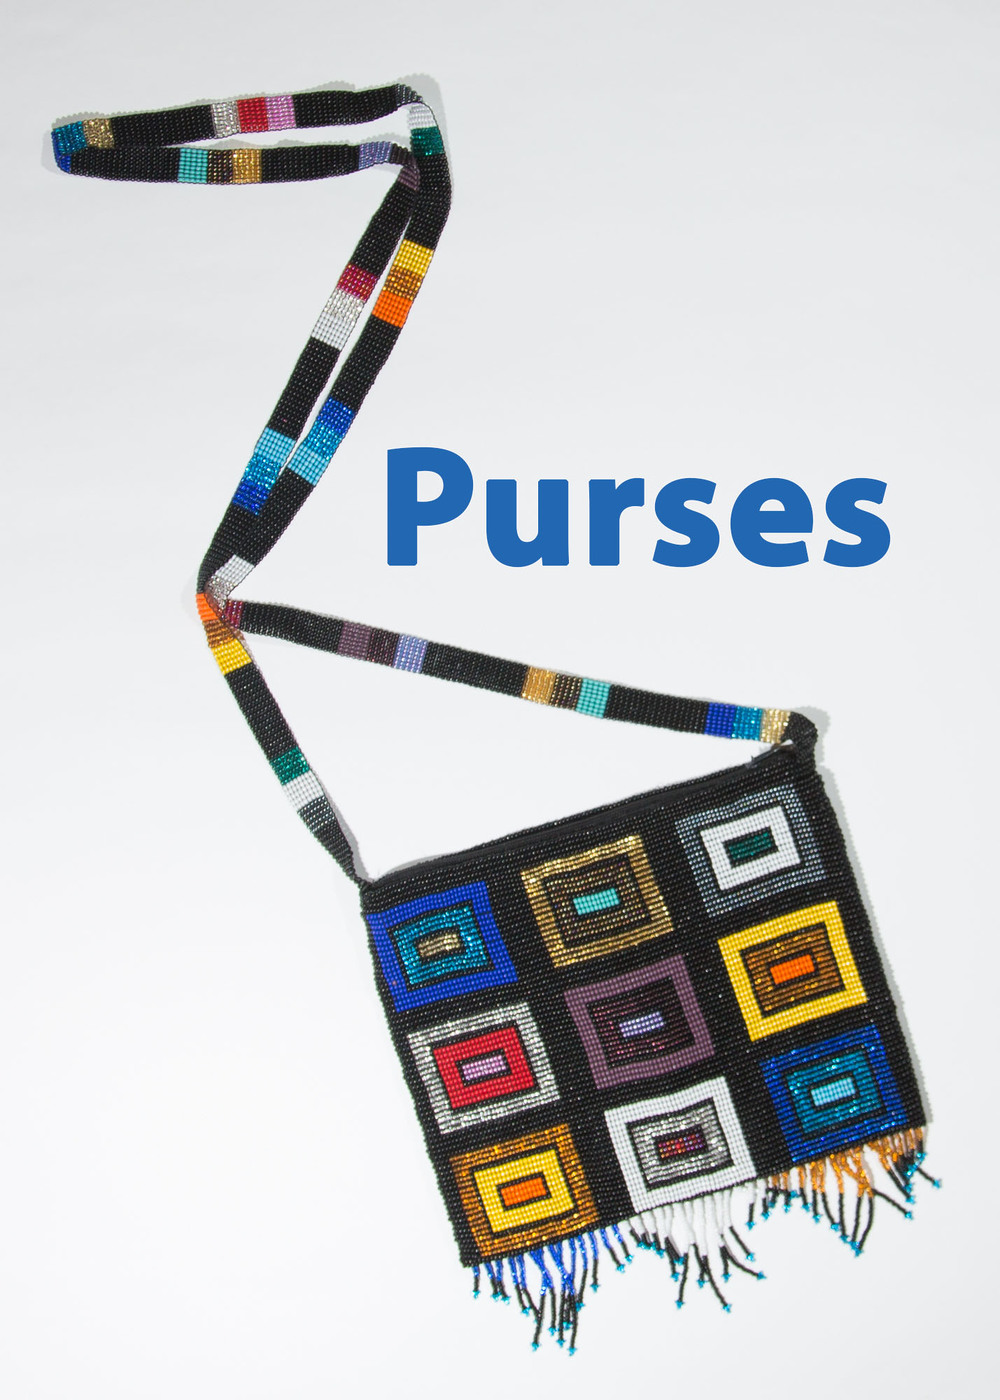 Handcrafted Purses